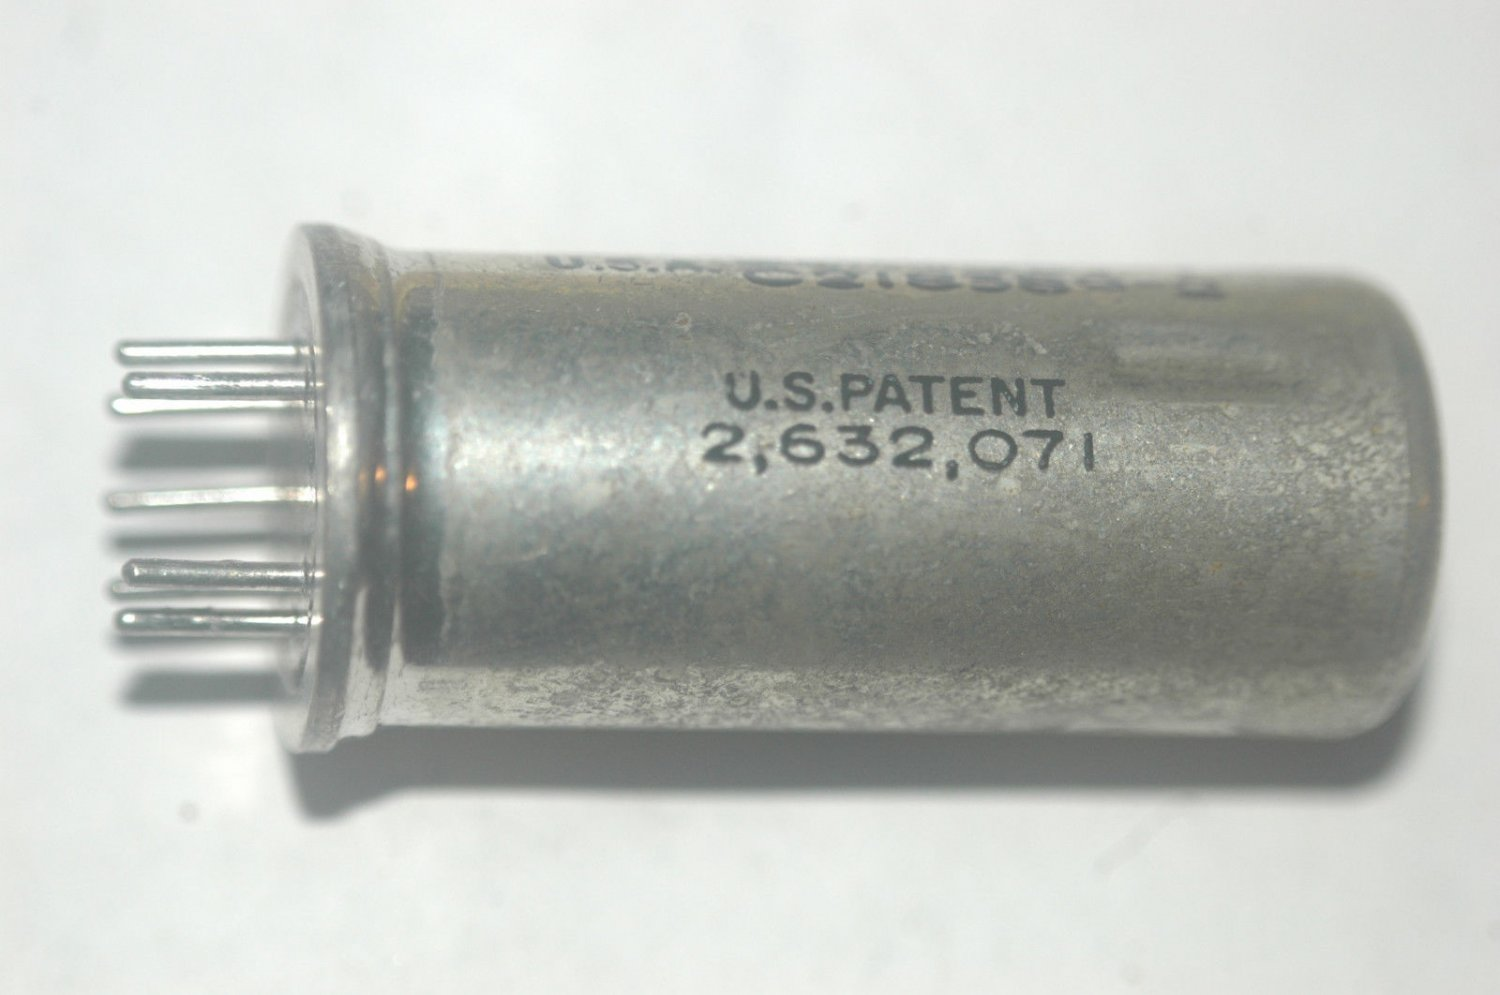 POTTER & BRUMFIELD SM-4057-1 Relay Date Code-7419 Quantity-1